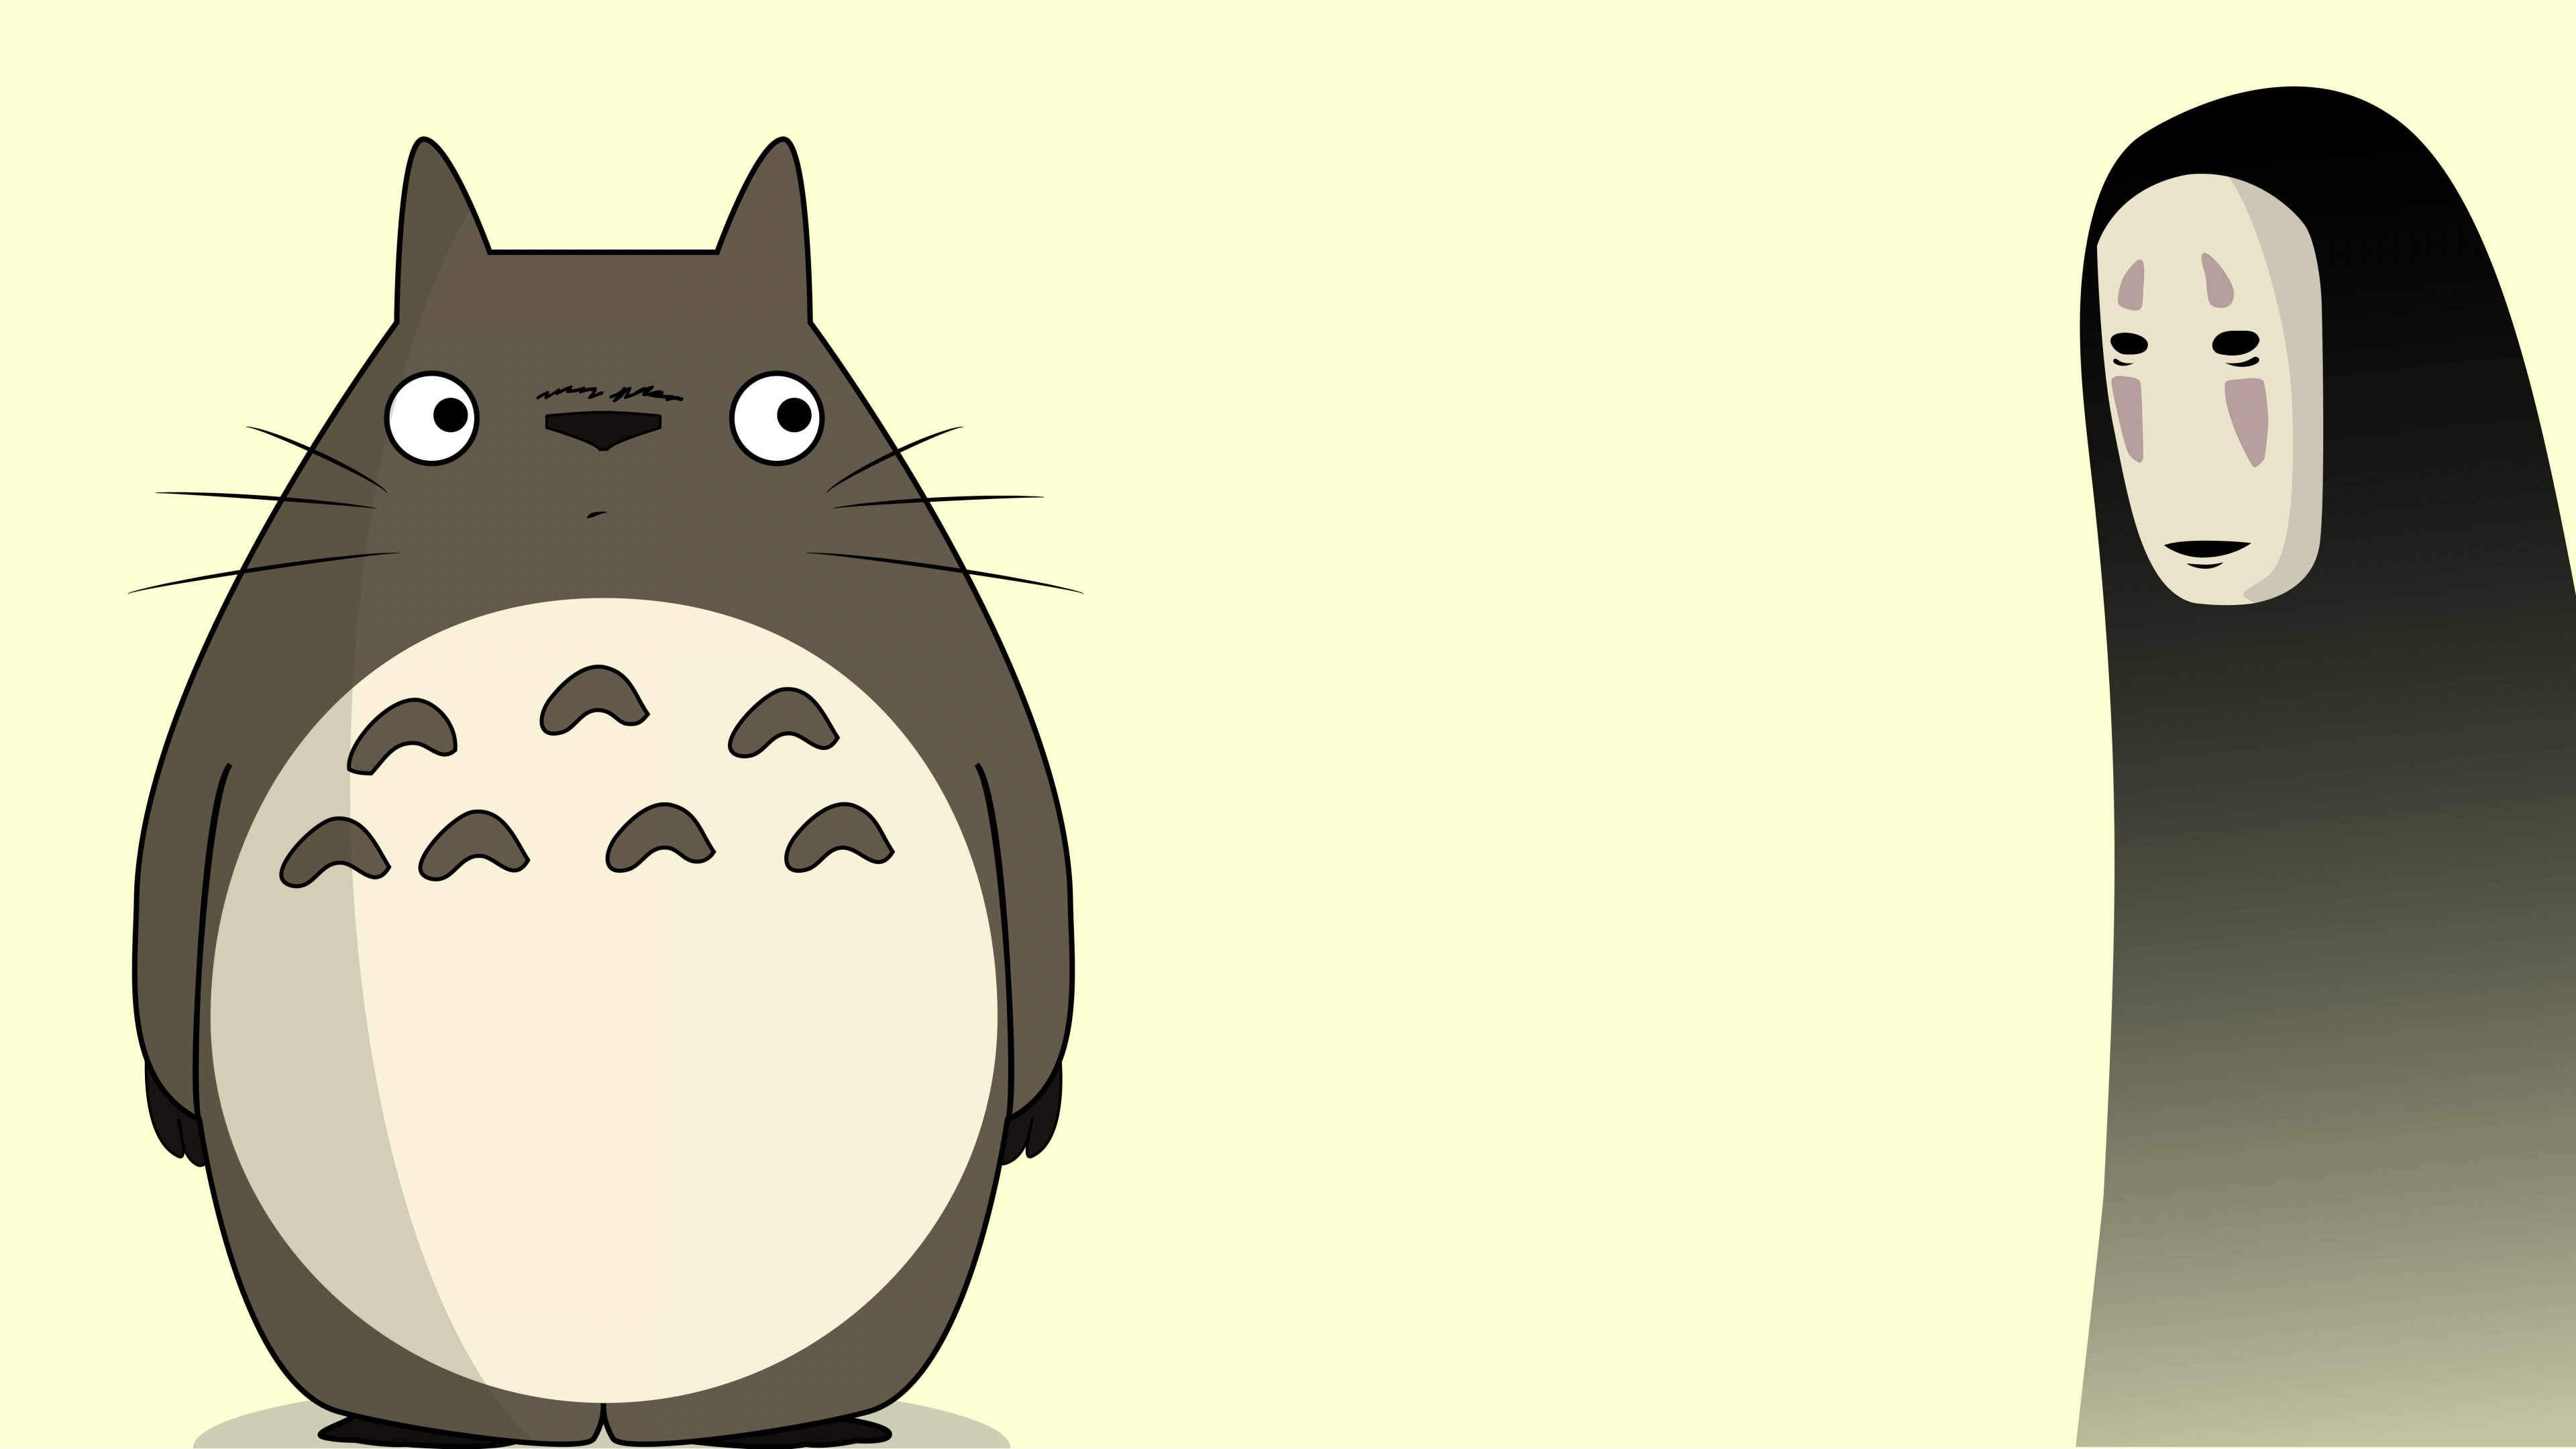 Totoro Y Kaonashi No Face From Spirited Away Anime Wallpaper Id 5035